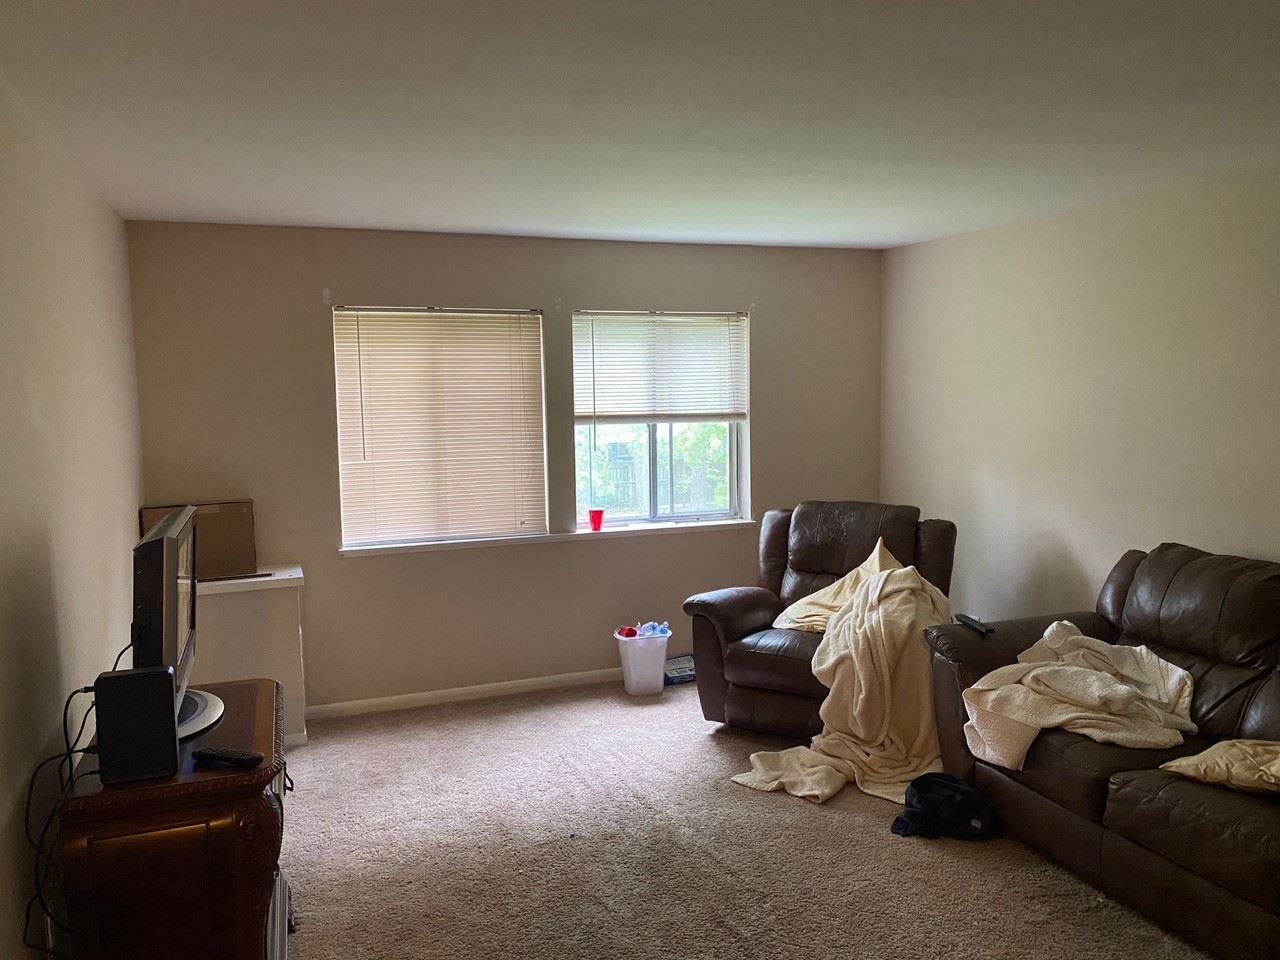 Photo of 1302 Mercury Blvd #30, Murfreesboro, TN 37130 (MLS # 2252249)